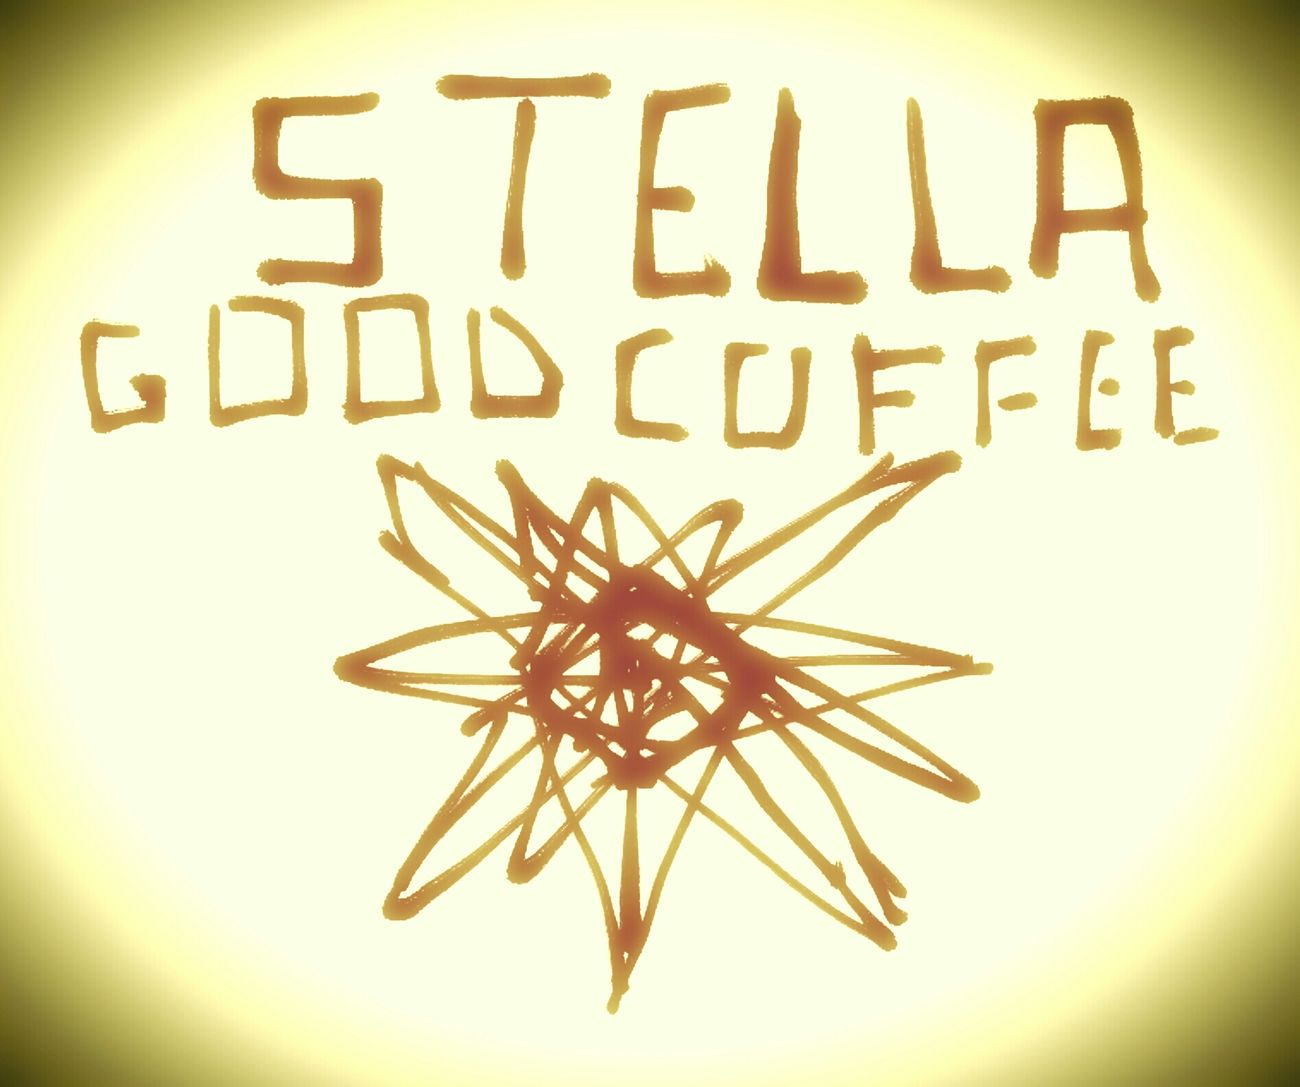 Goodmorning Stellagoodcoffee Fisher Building Detroit Coffee Visitdetroit Smallbusiness